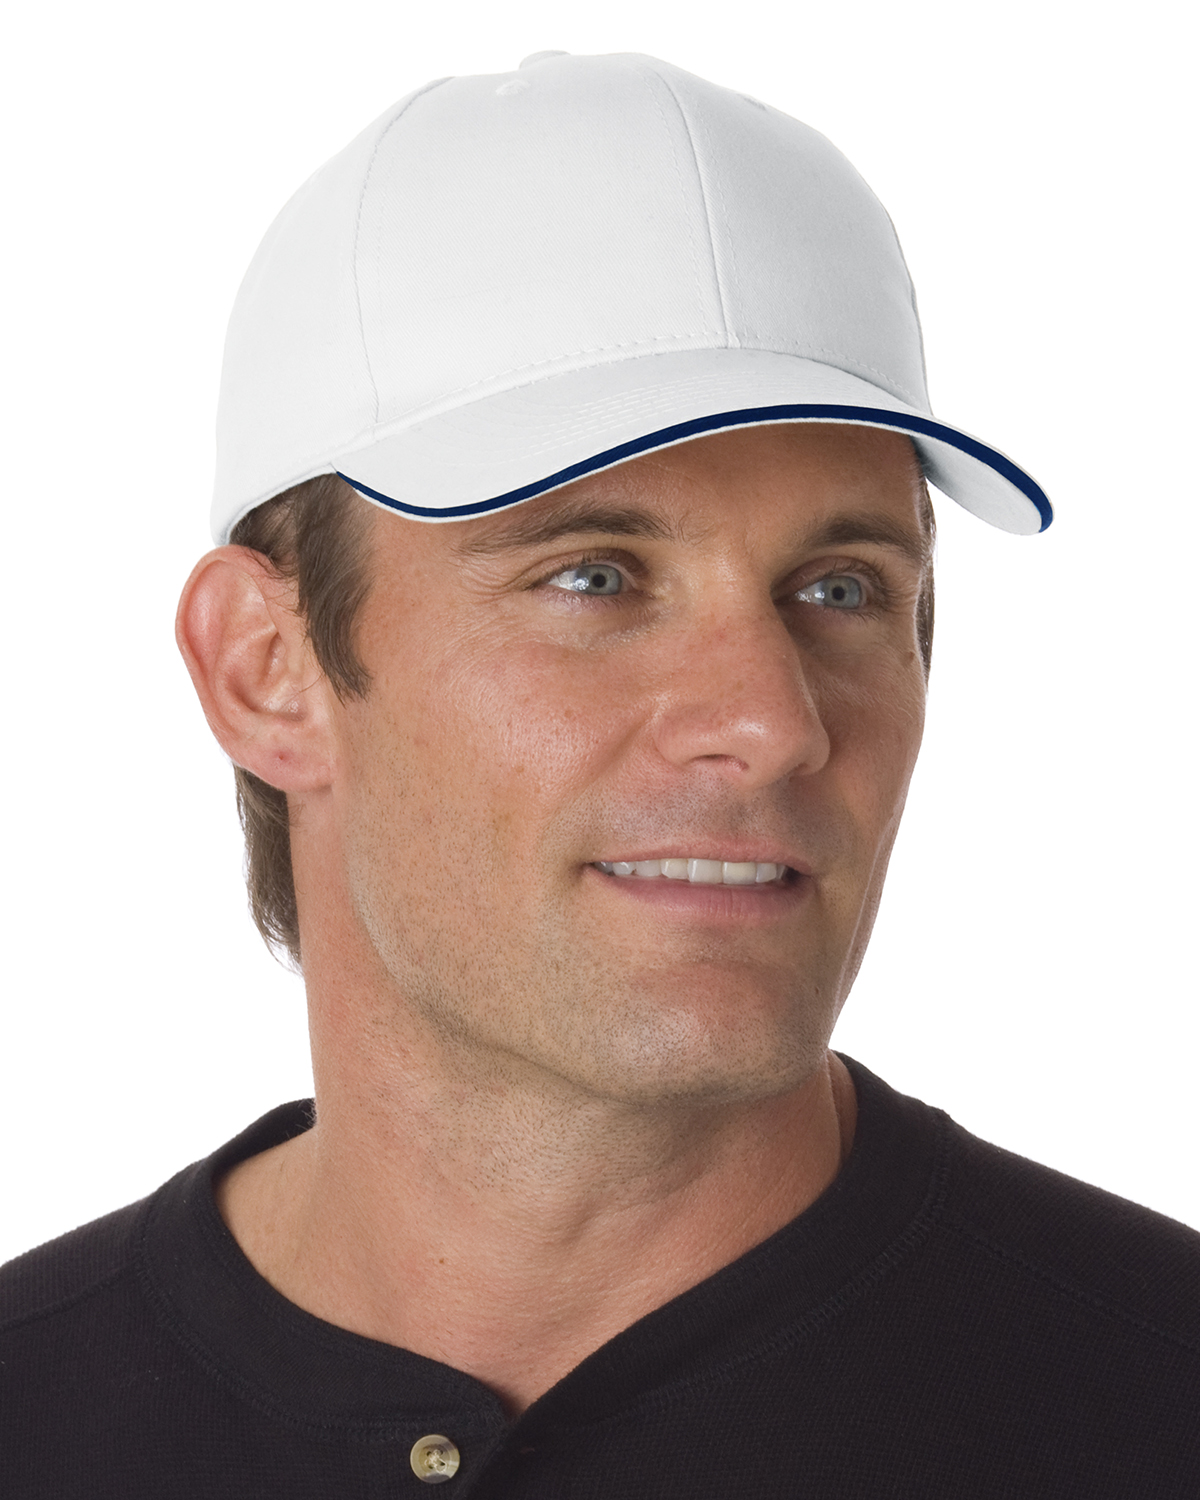 Bayside BA3621 - Brushed Twill Structured Sandwich Cap